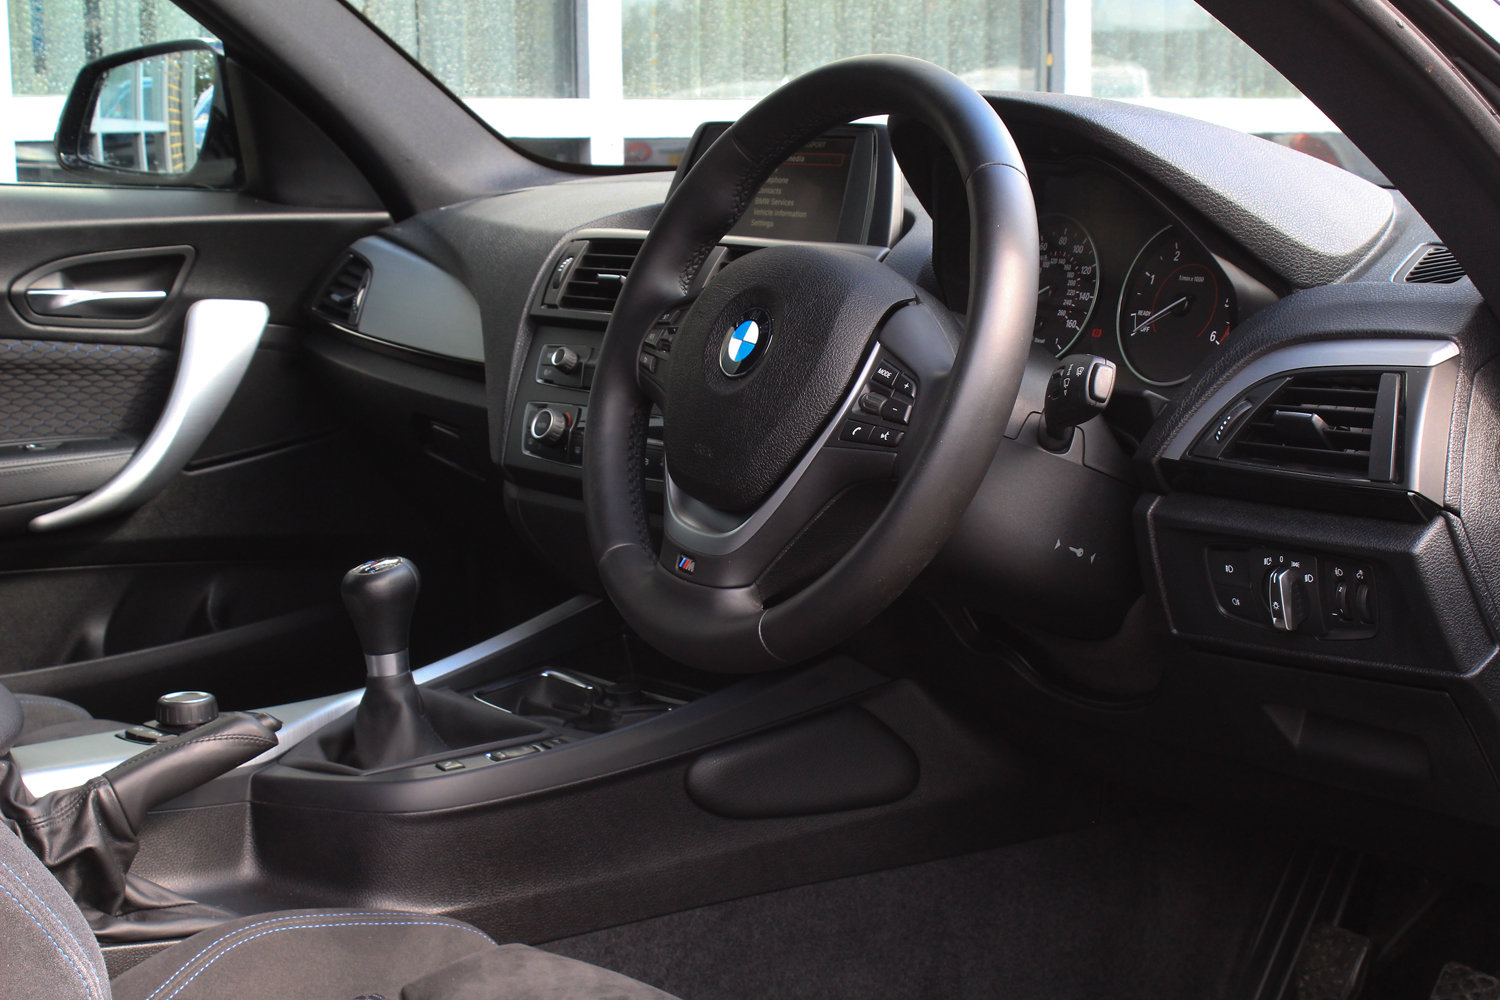 2013 BMW 1 SERIES 120D M SPORT  For Sale (picture 5 of 6)